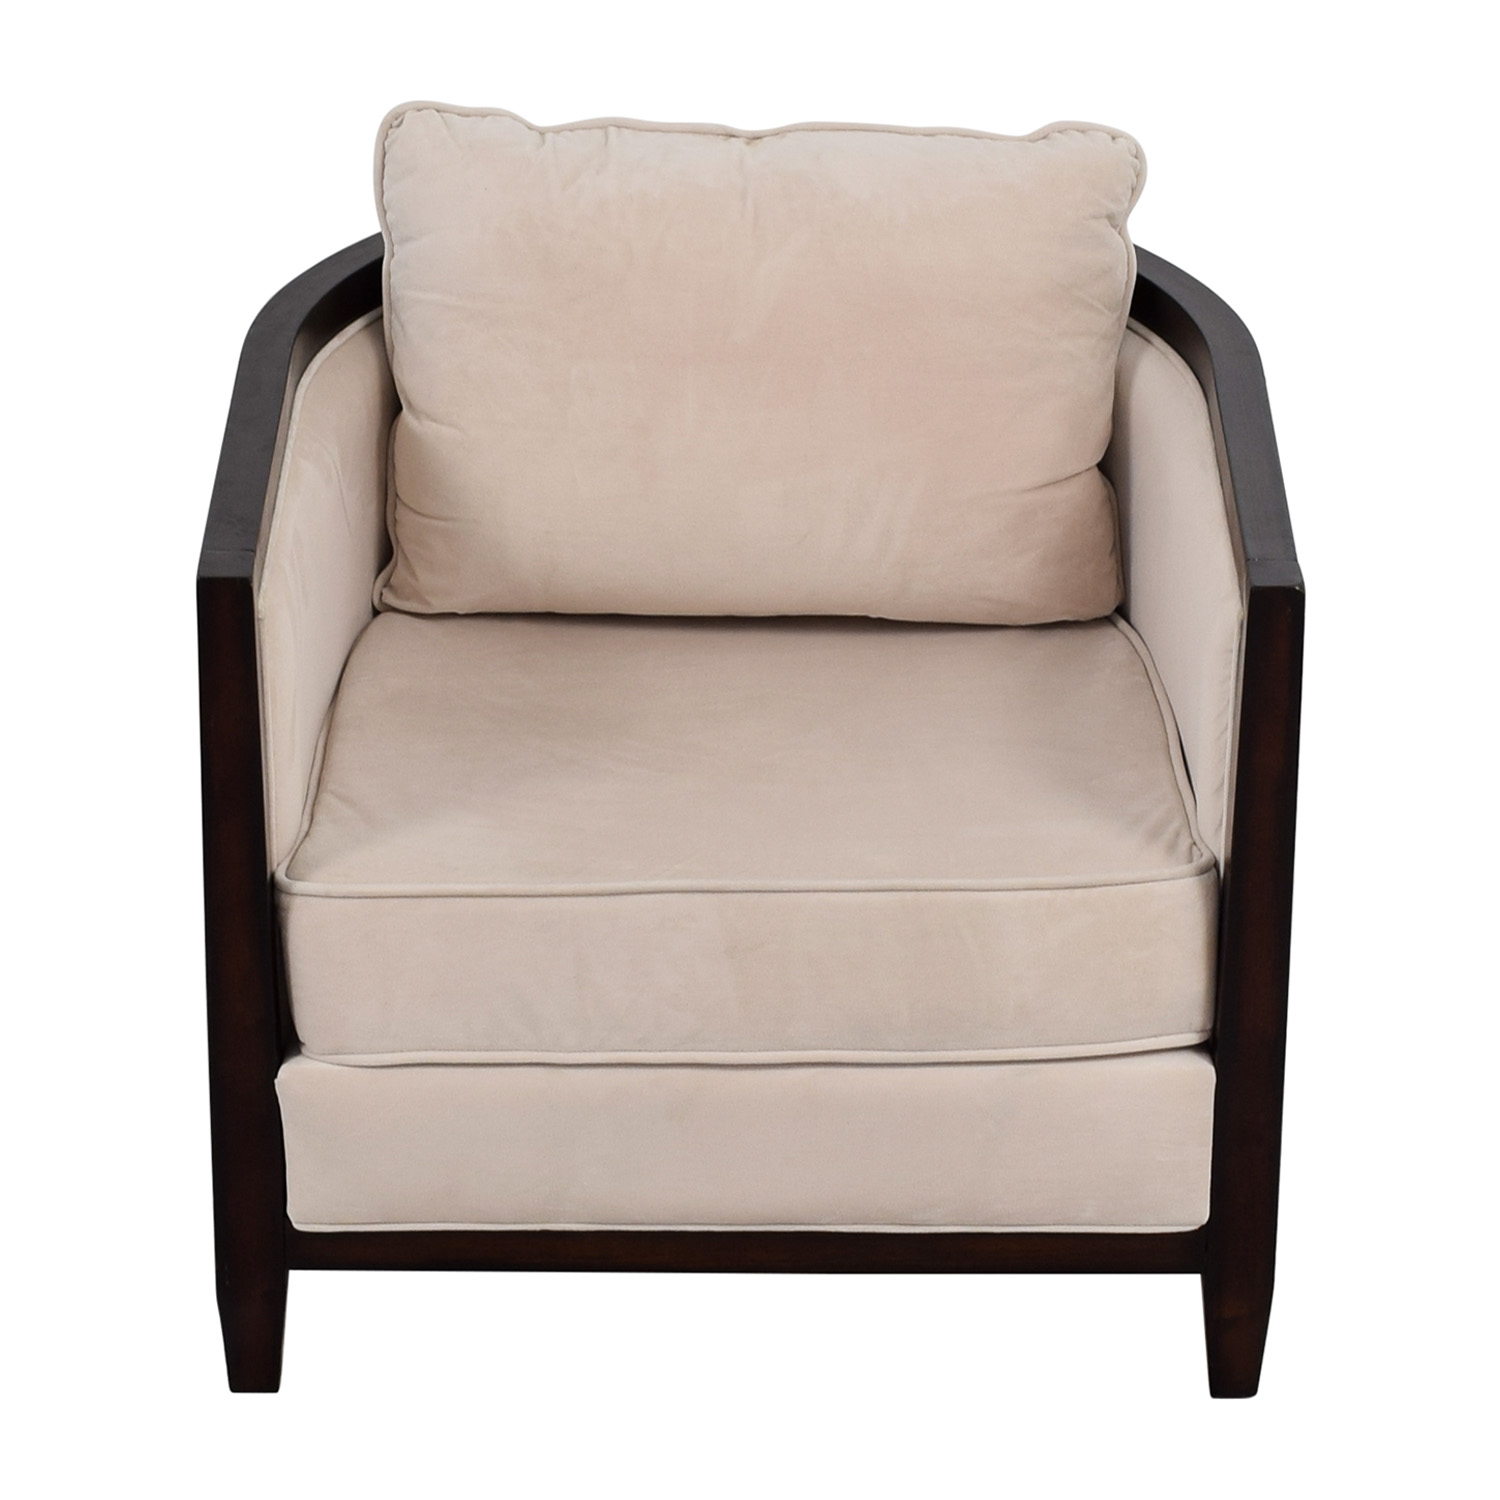 ... Coaster Coaster Beige Leisure Accent Chair Second Hand ...